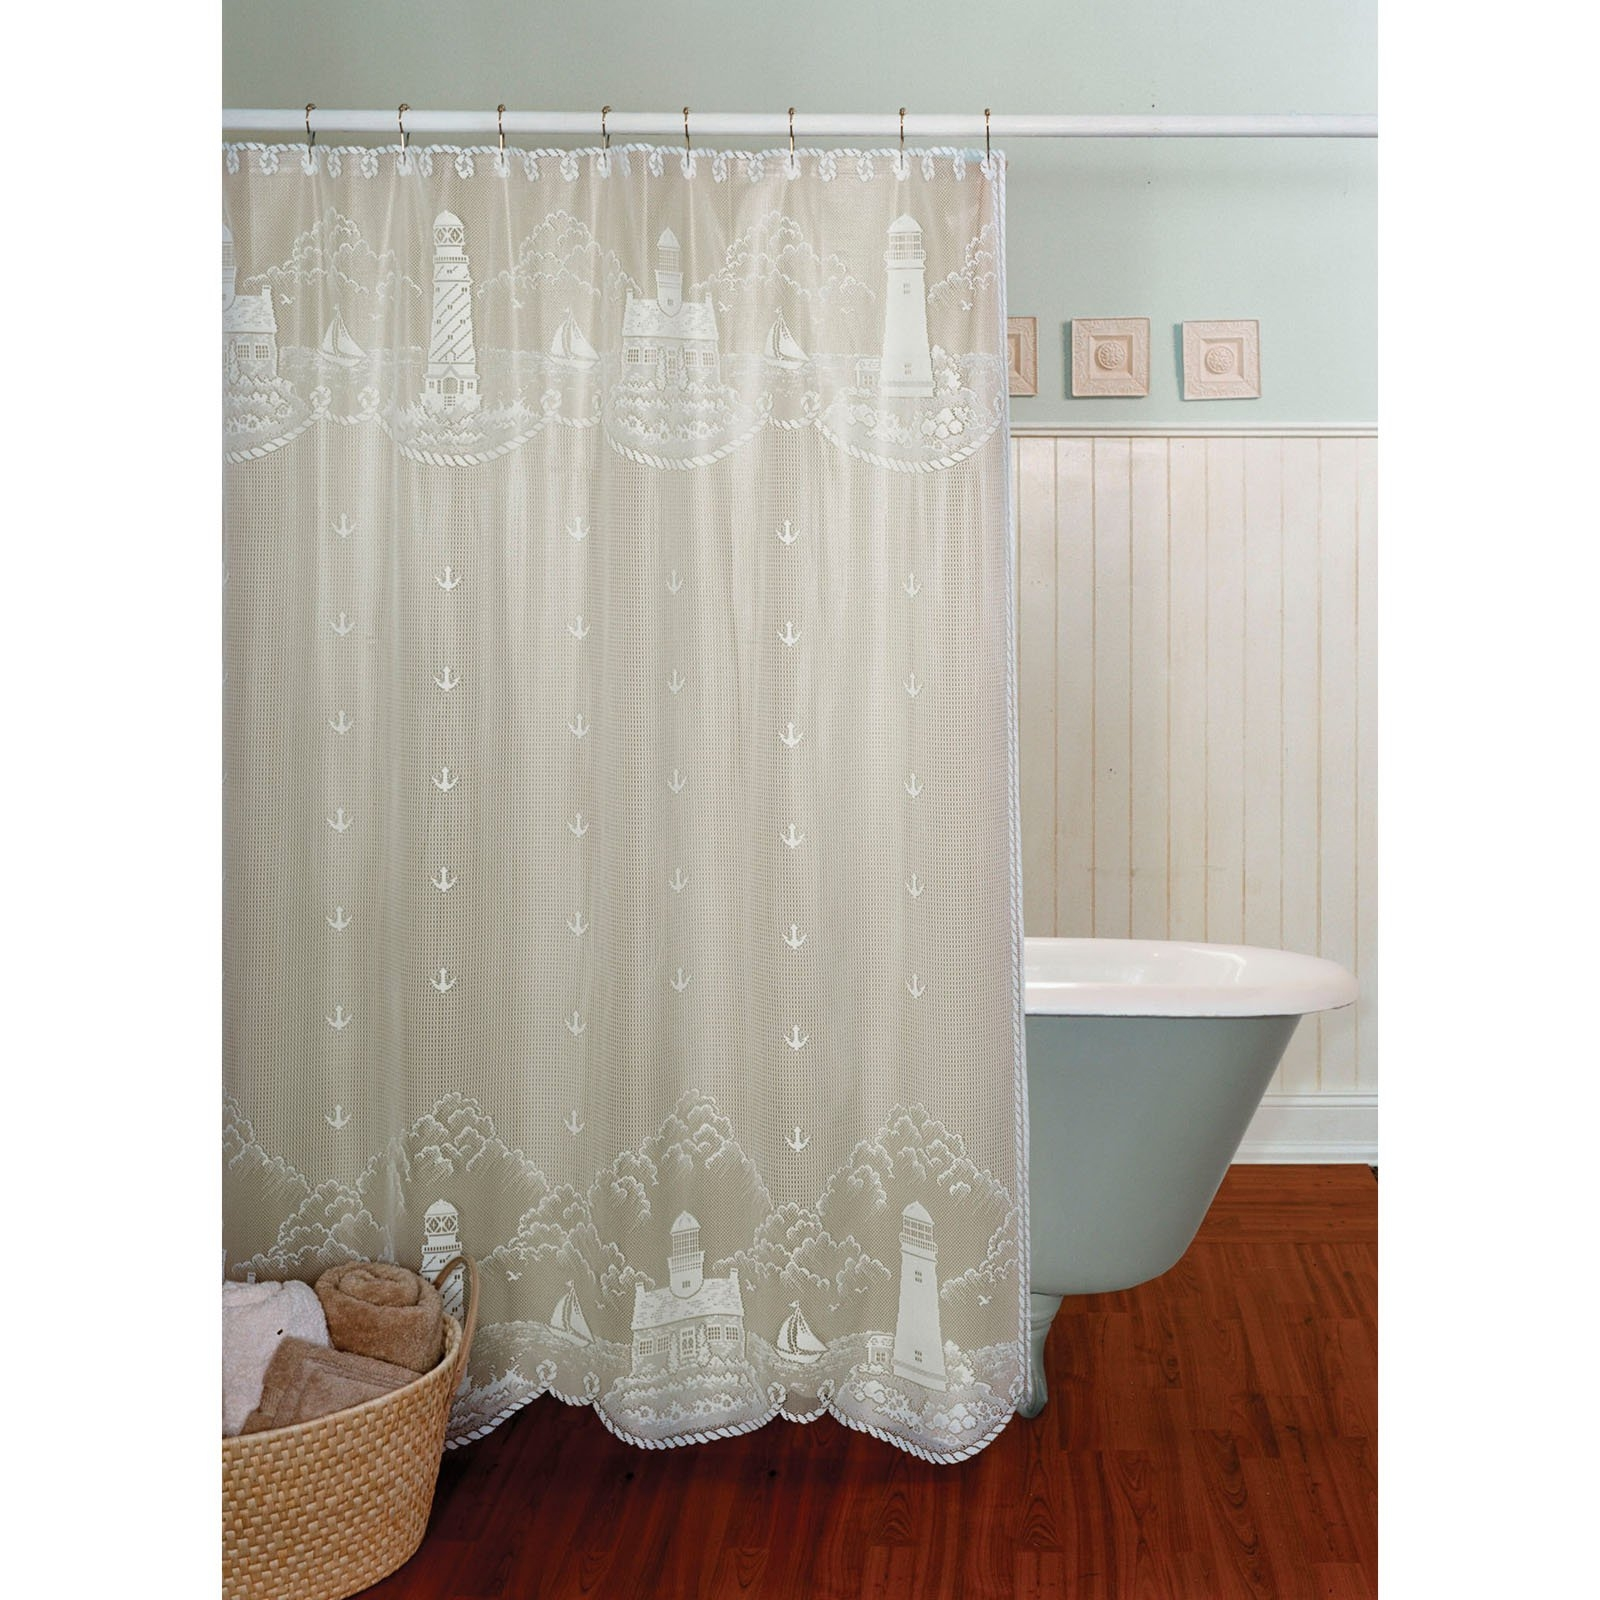 Sheer Fabric Shower Curtain Curtains Decoration With Hookless Fabric Shower Curtain Liner (Image 24 of 25)